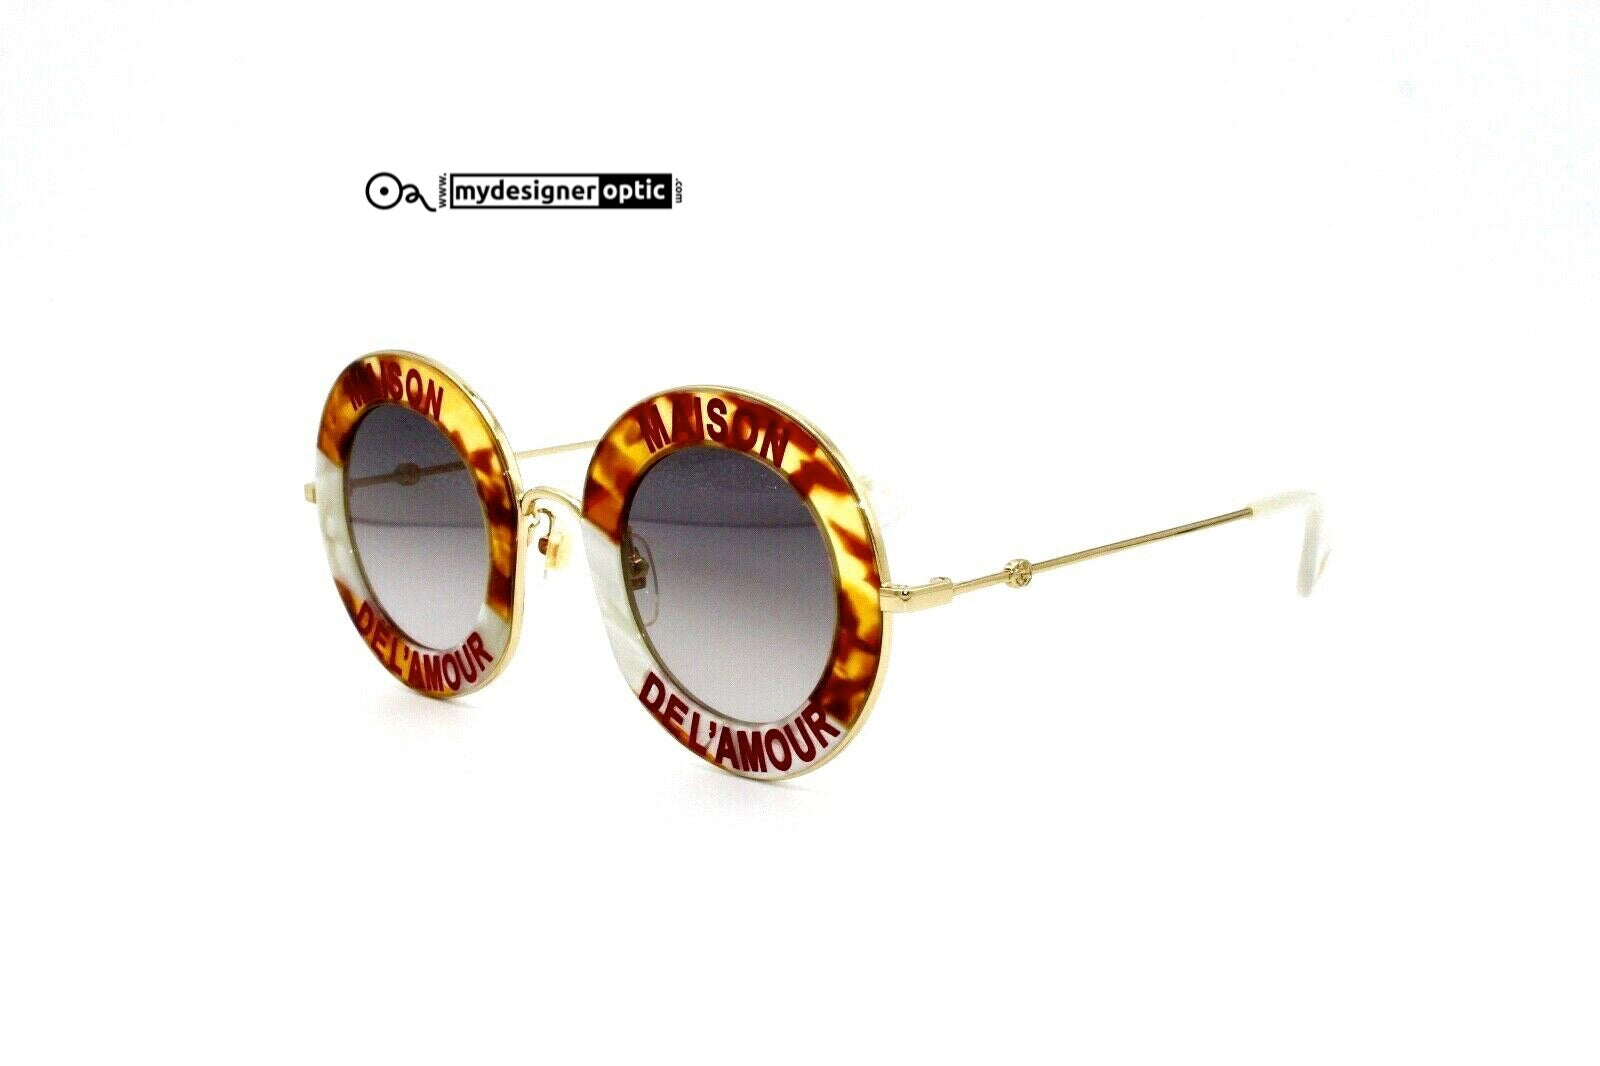 Gucci Sunglasses GG0780S 004 46-30-145 S0VNS06390 Made in Italy Cat 3 - Mydesigneroptic